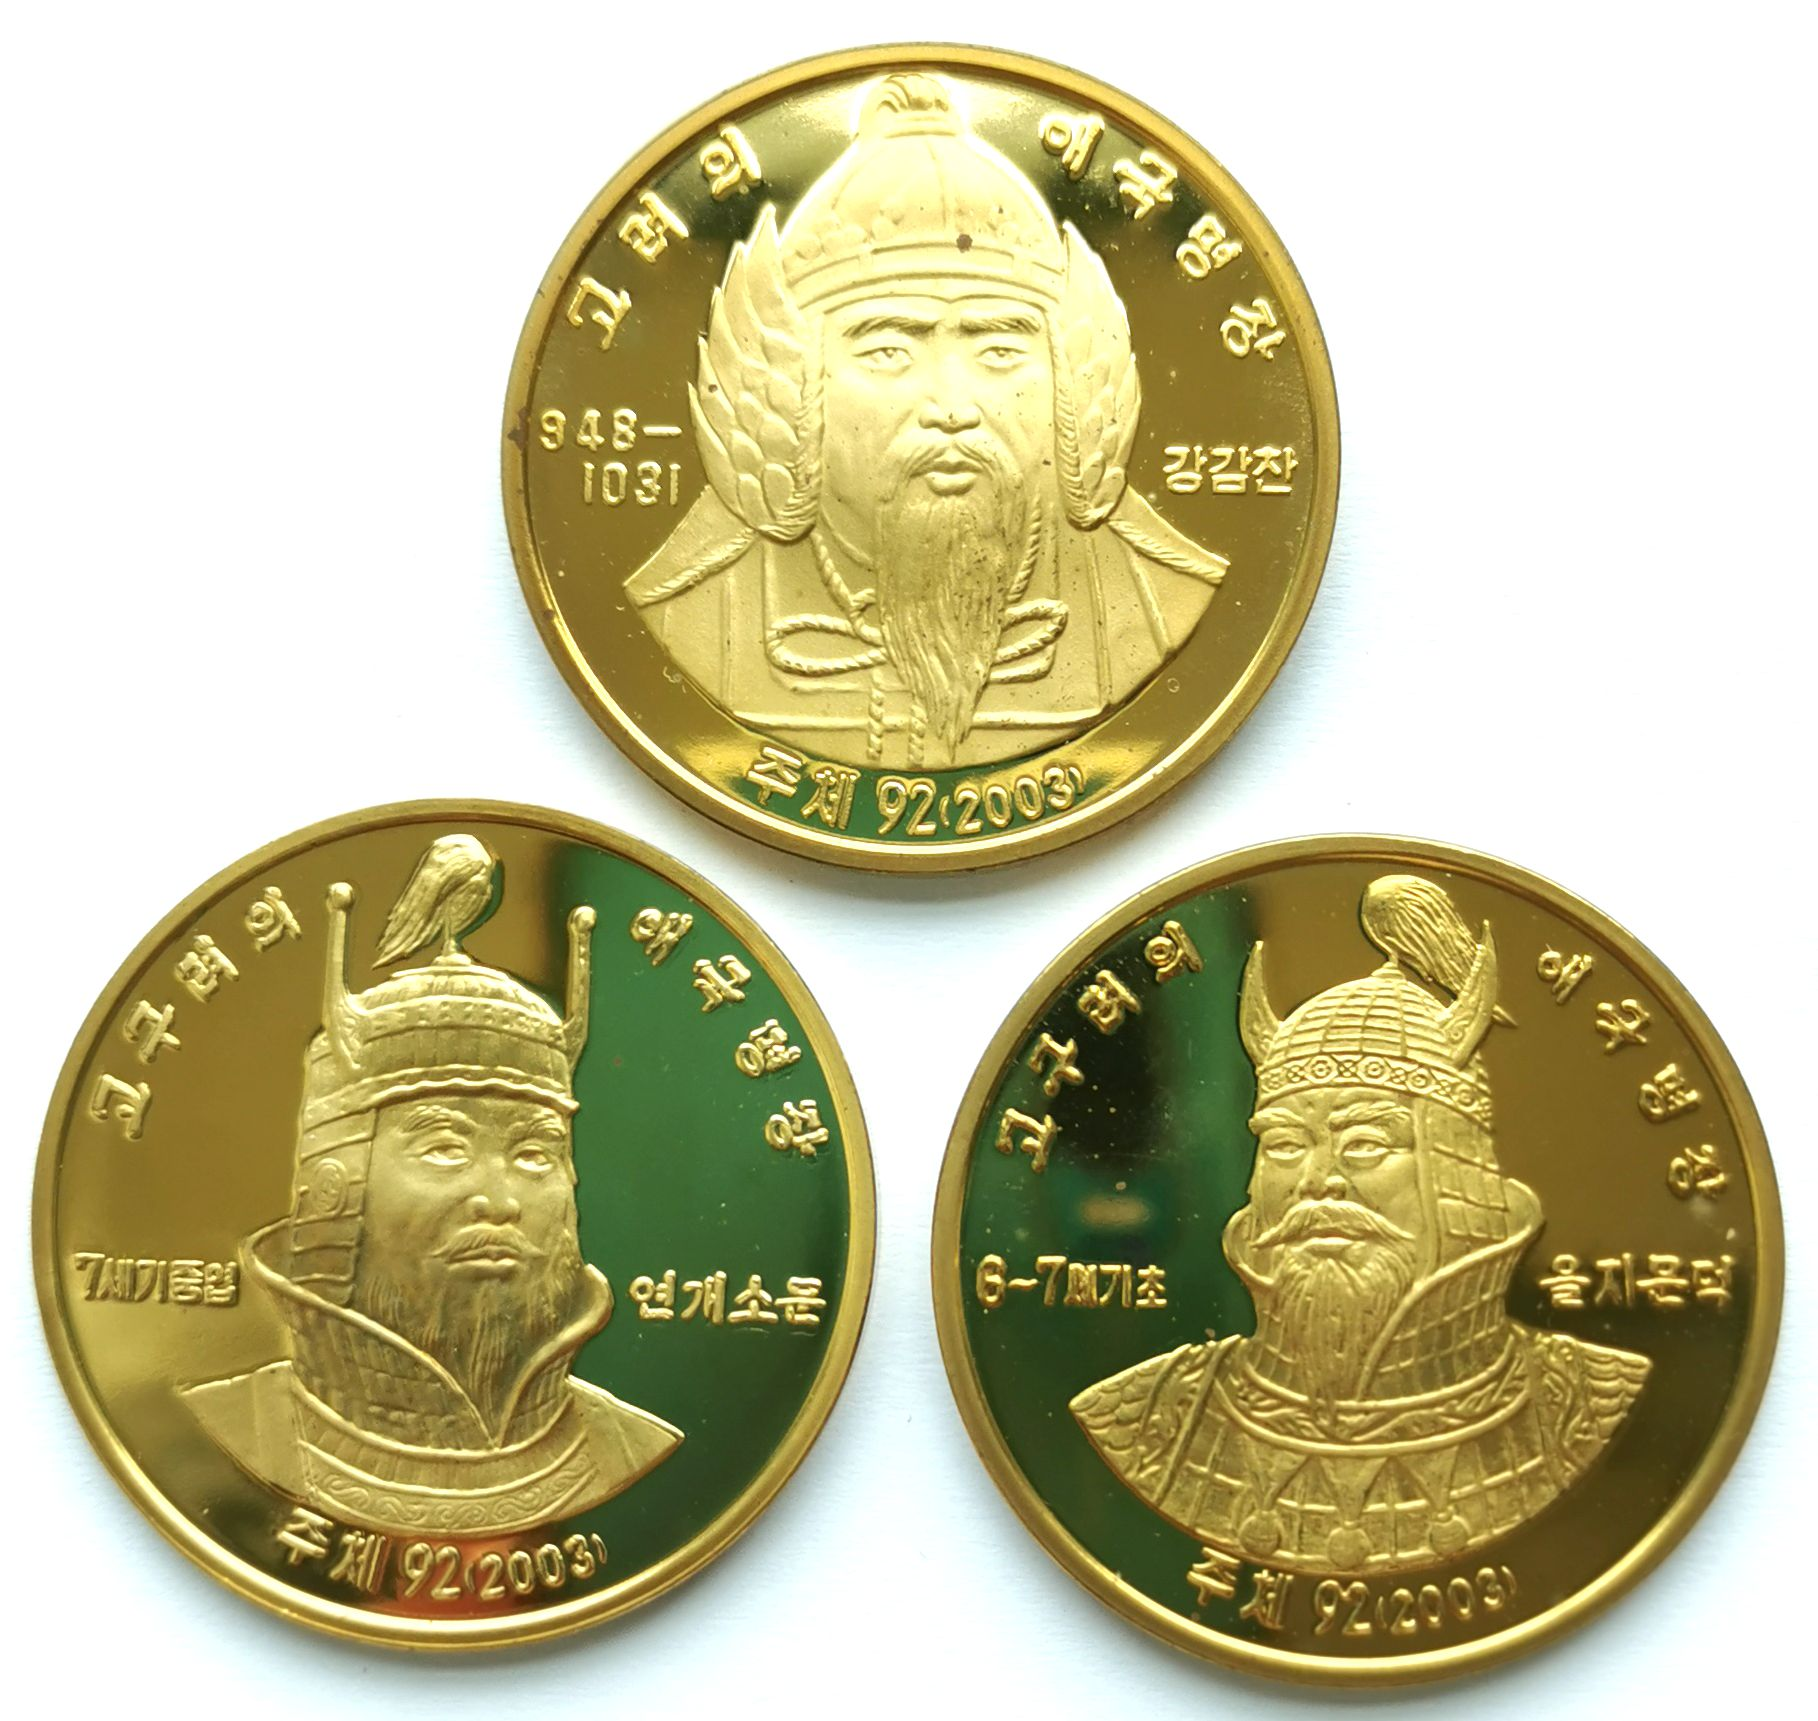 L3152, Koryo Generals, Korea 3 Pcs Commemorative Coins, 2003